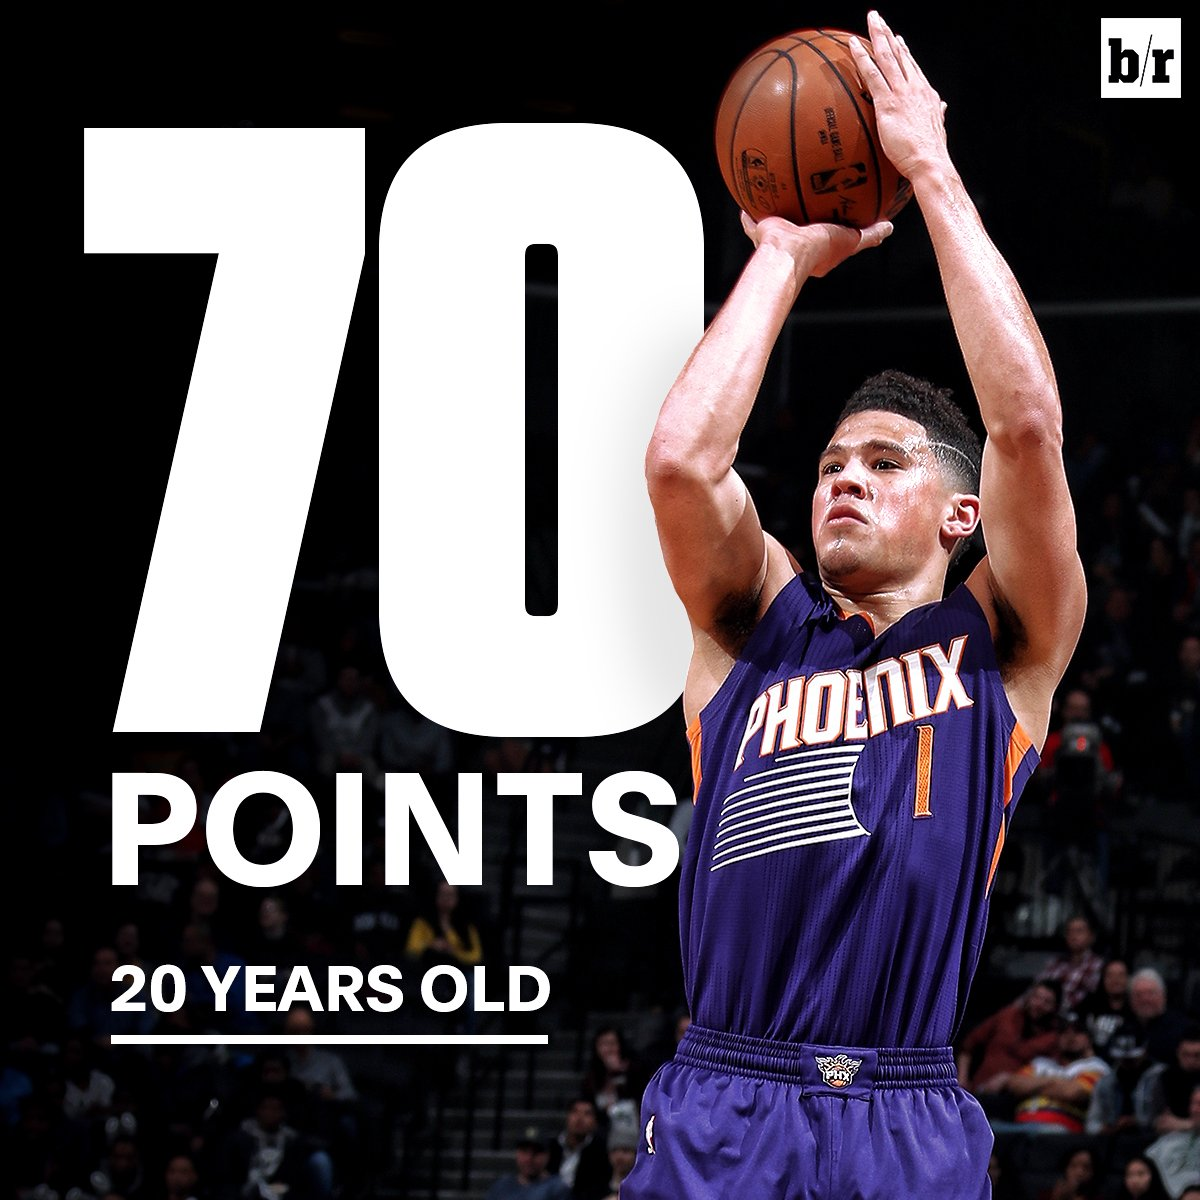 Devin Booker. No words. https://t.co/SydHhI4g0i